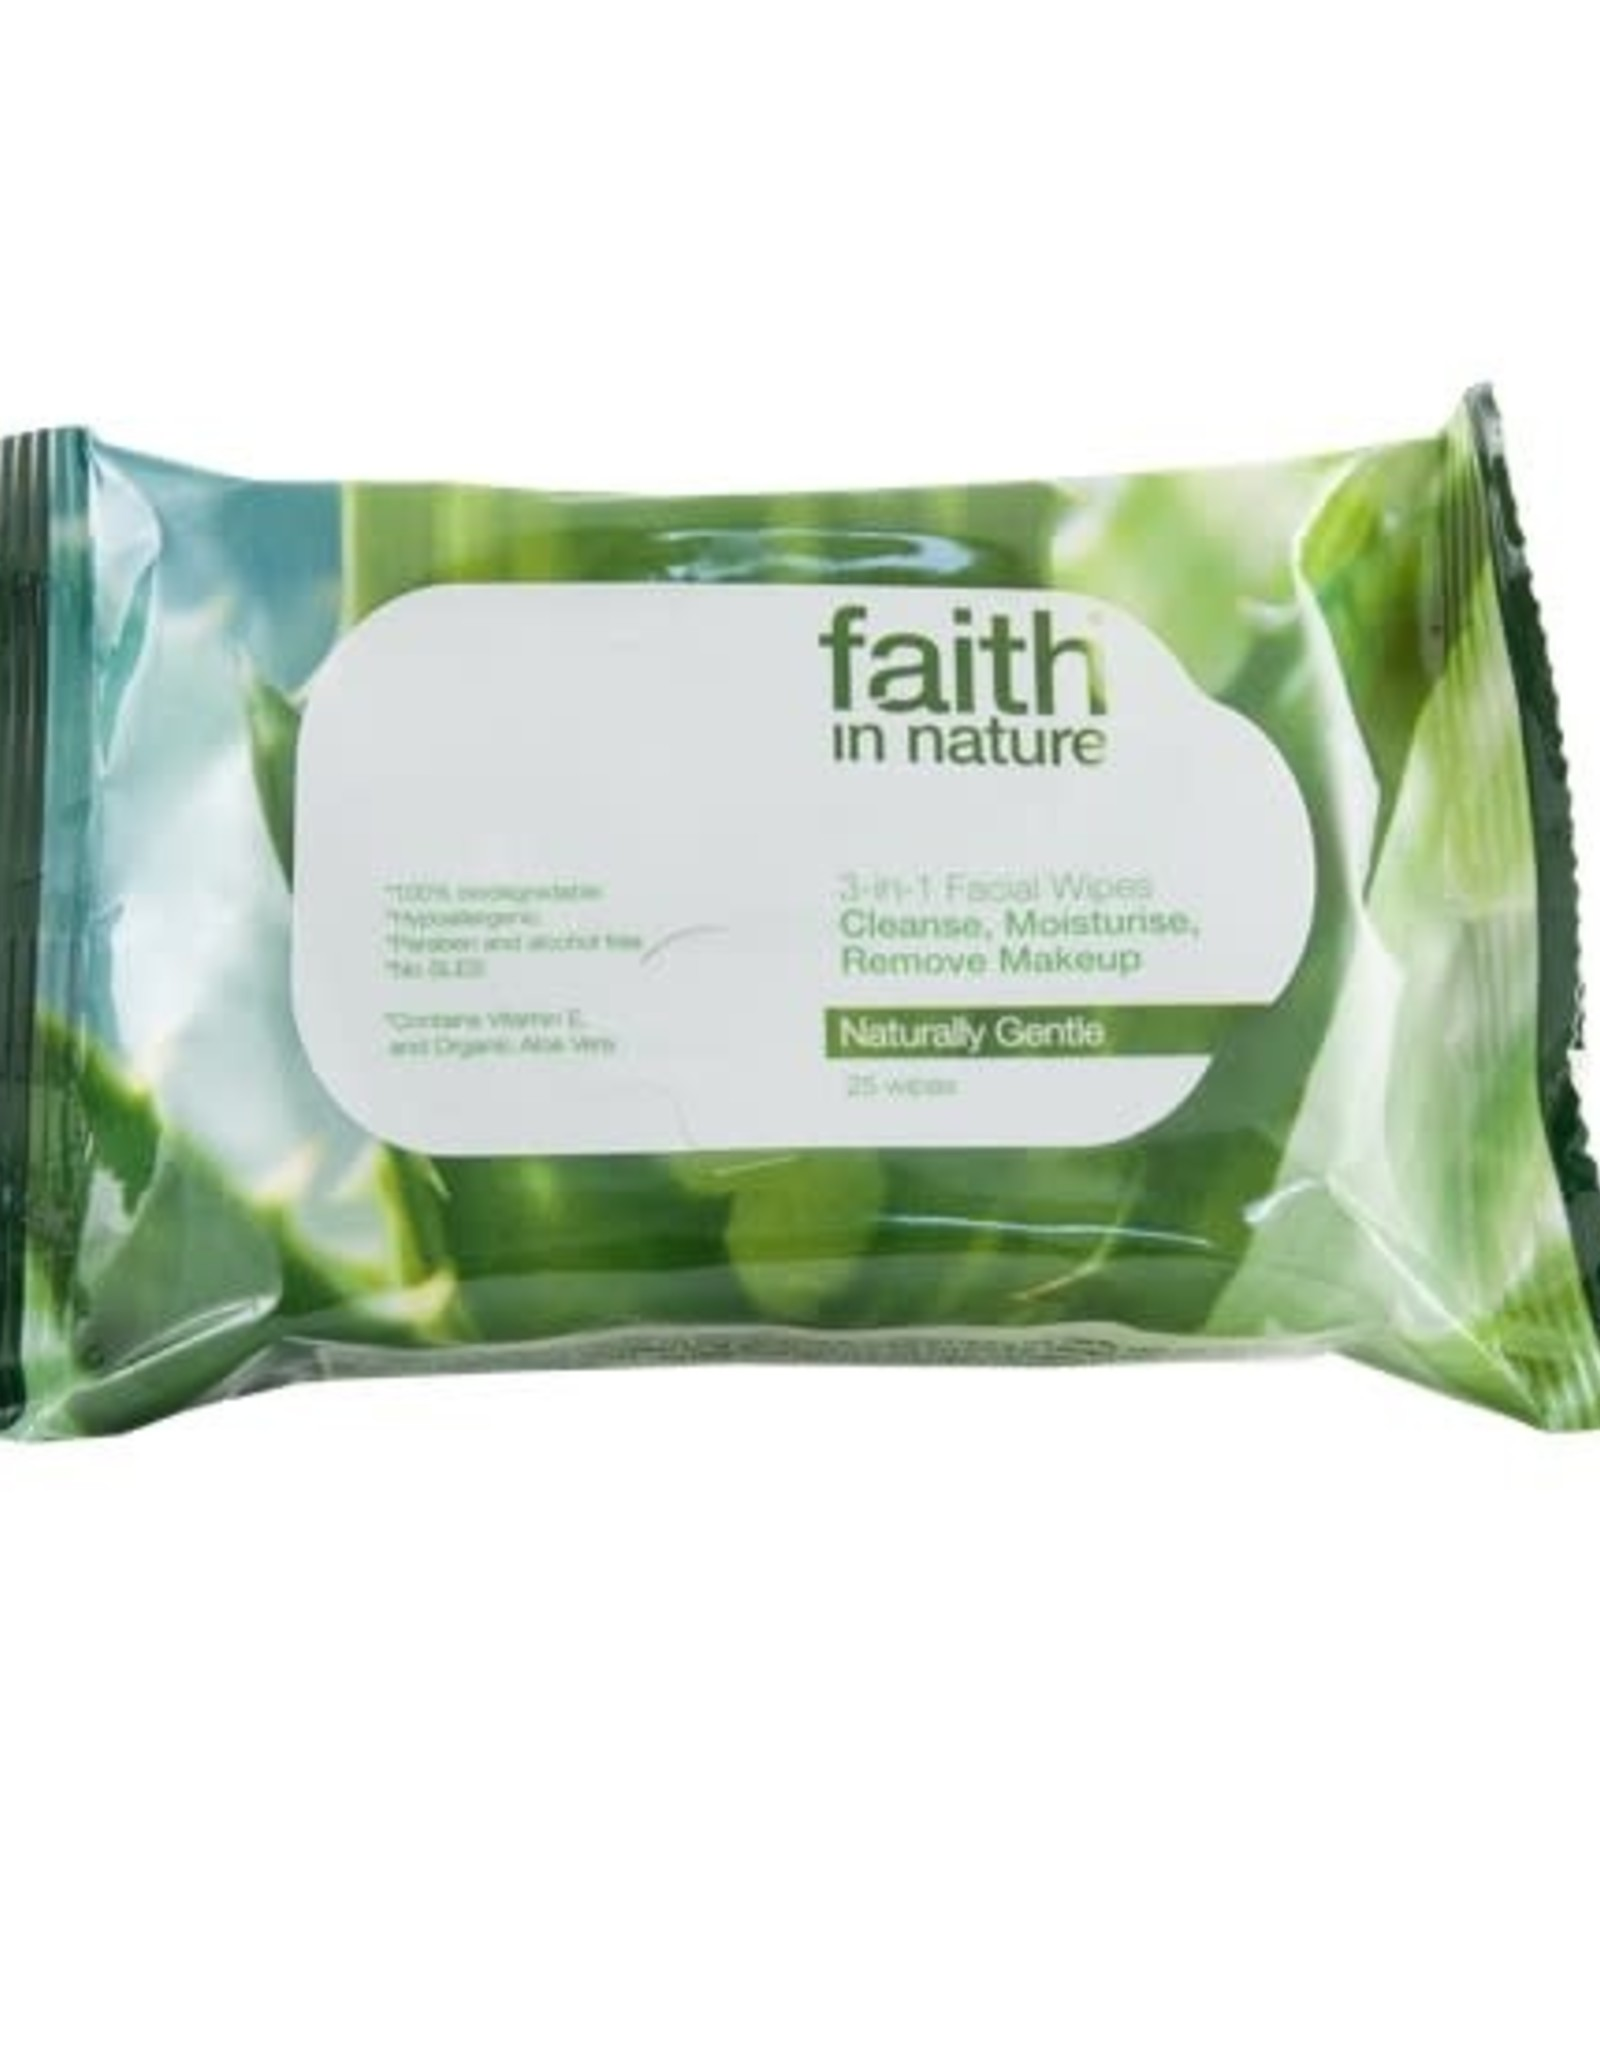 Faith in Nature Faith in Nature 3 in 1 Facial Wipes